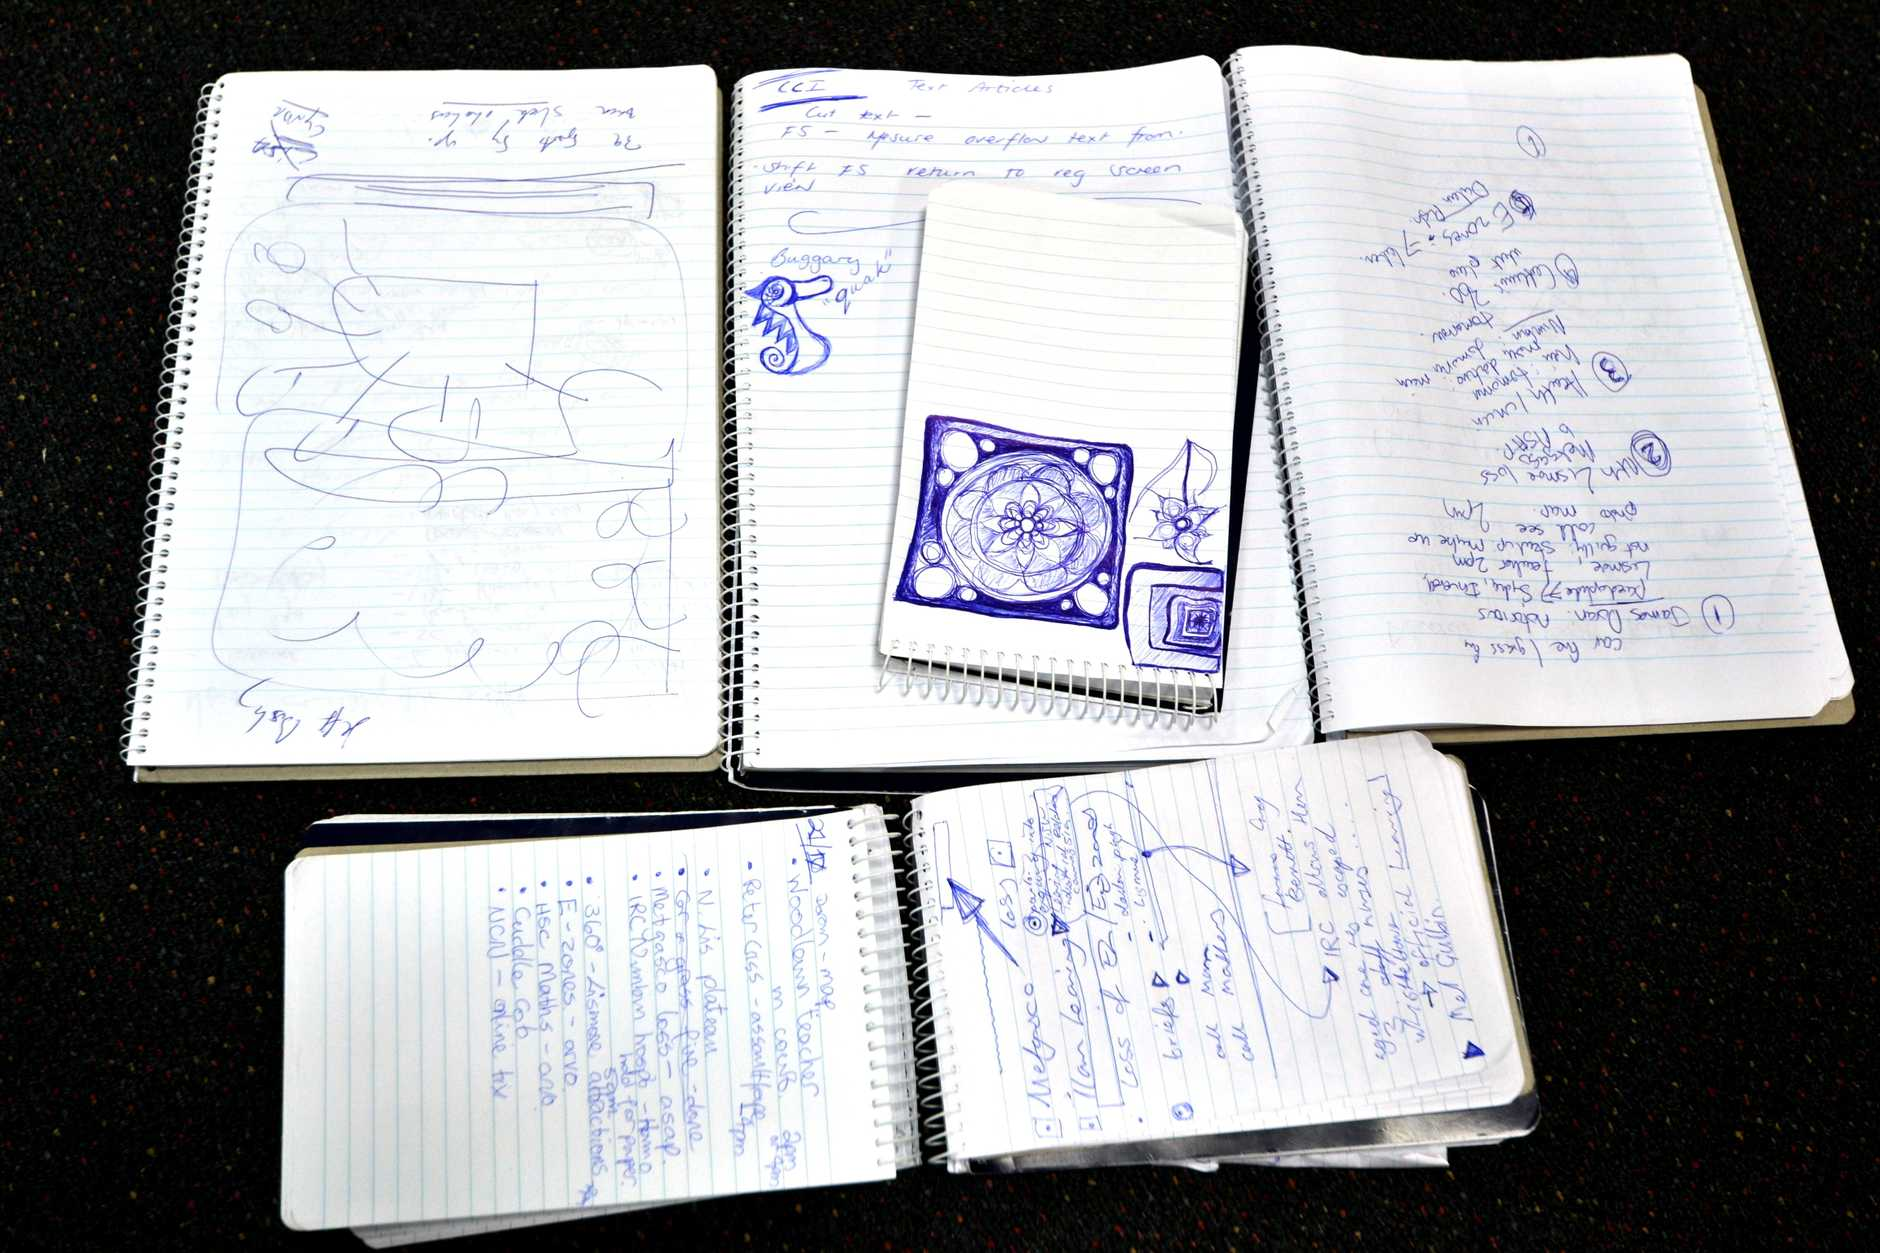 The range of notes and artwork made by The Northern Star journalists while discussing the news